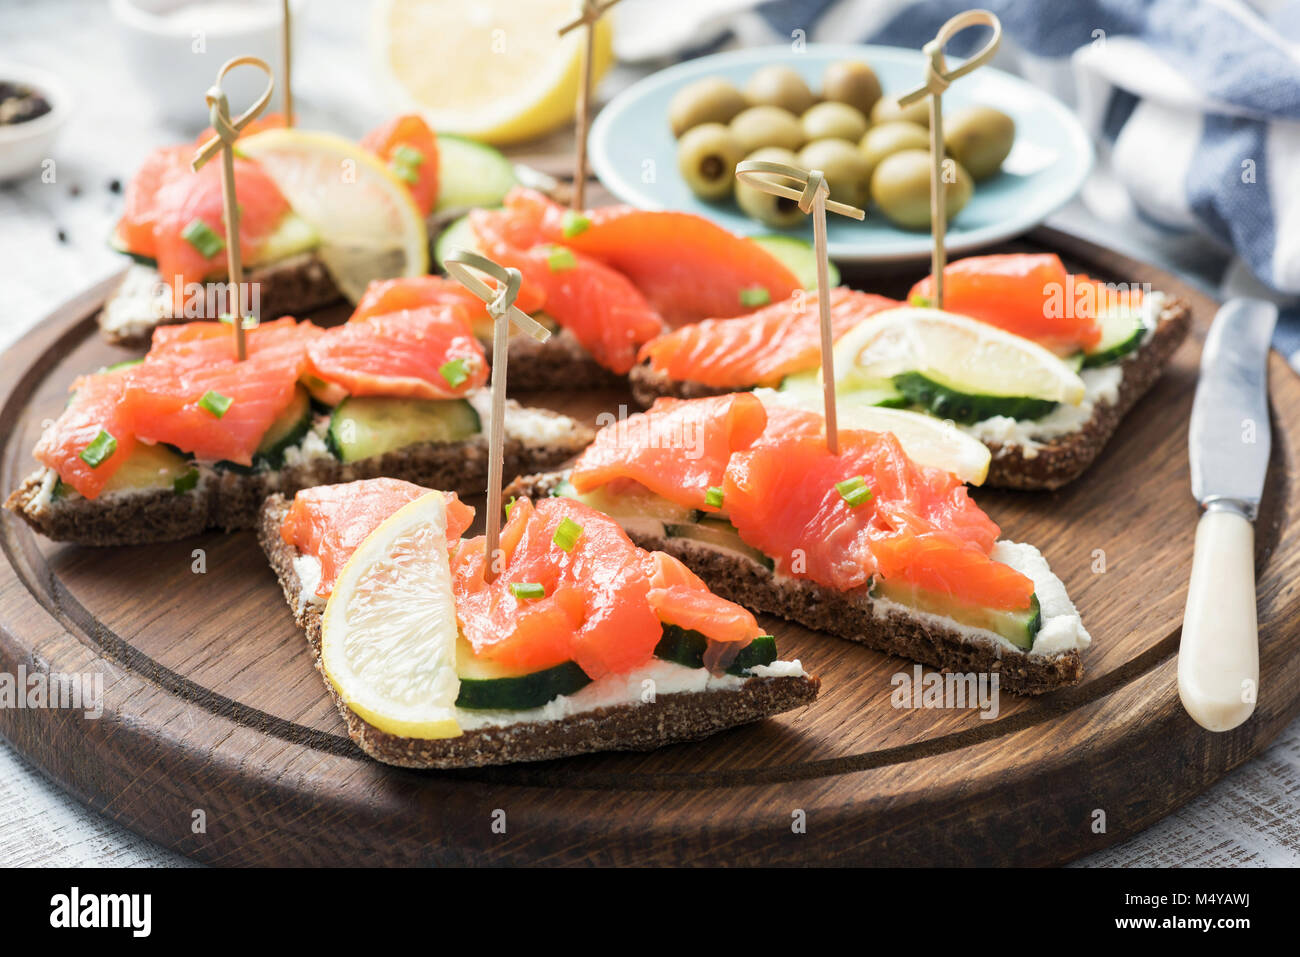 Canape sandwiches with salmon, cucumber and cream cheese. Closeup view - Stock Image